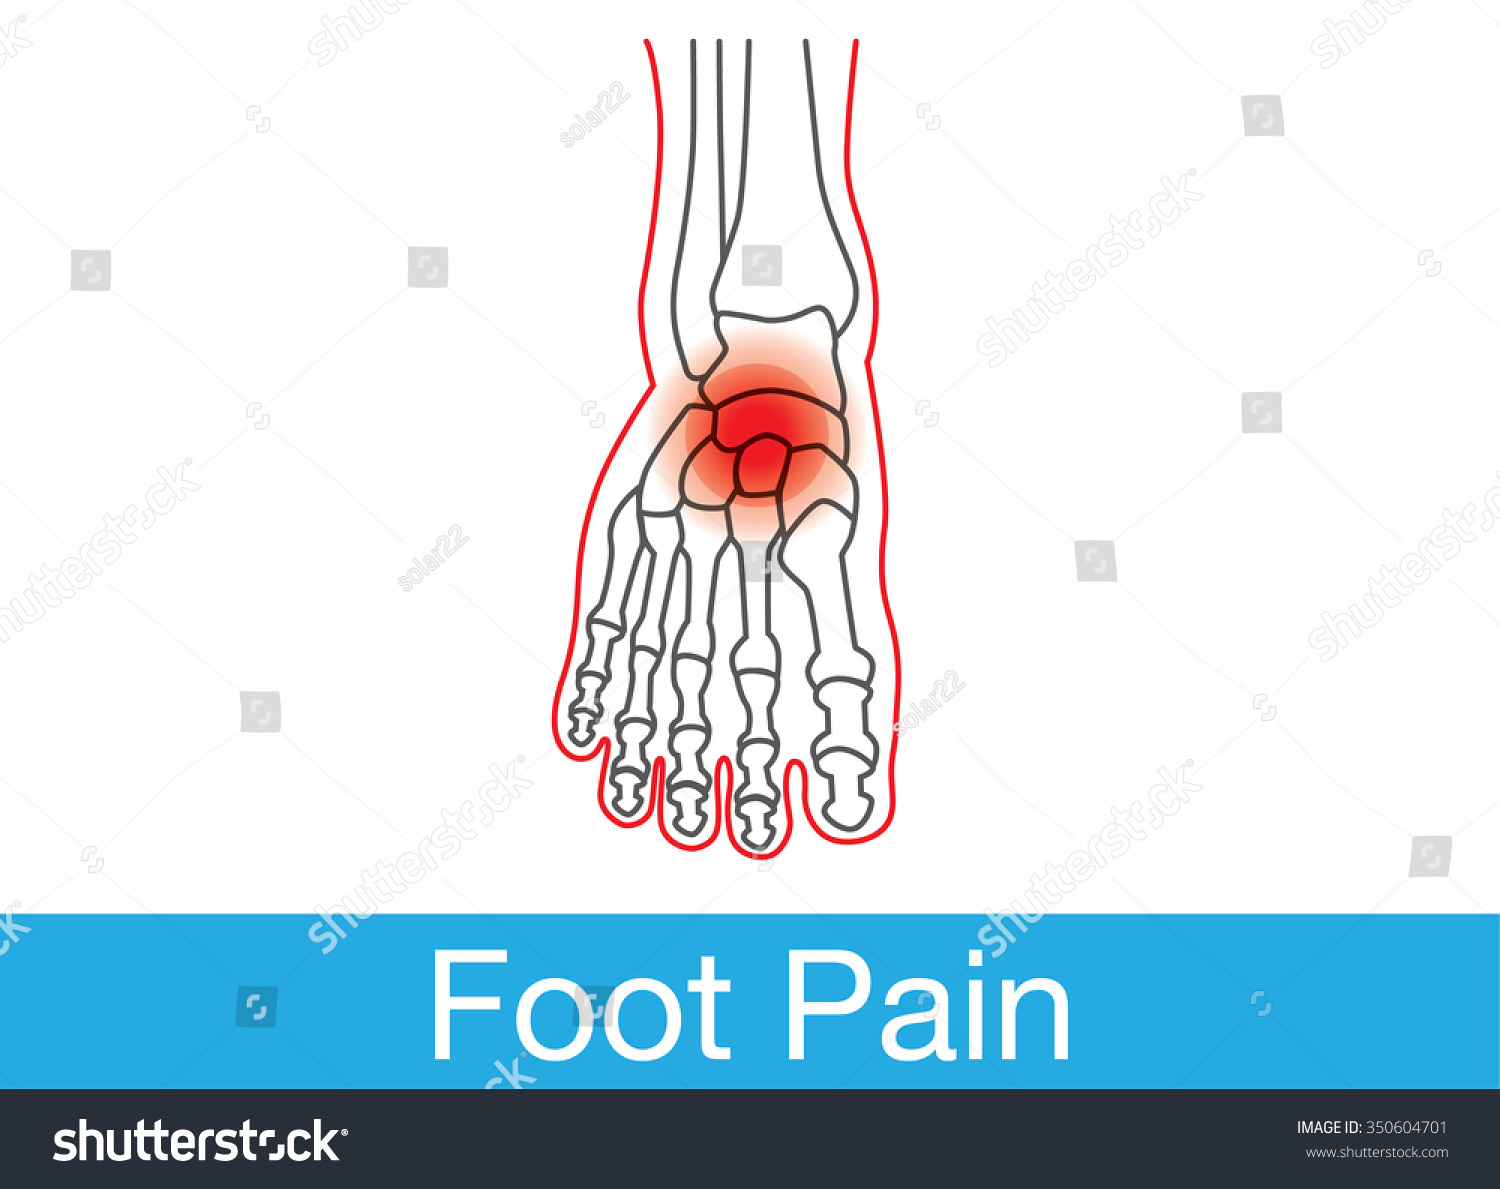 Outline Foot Bone Which Have Pain Stock Vector 350604701 - Shutterstock